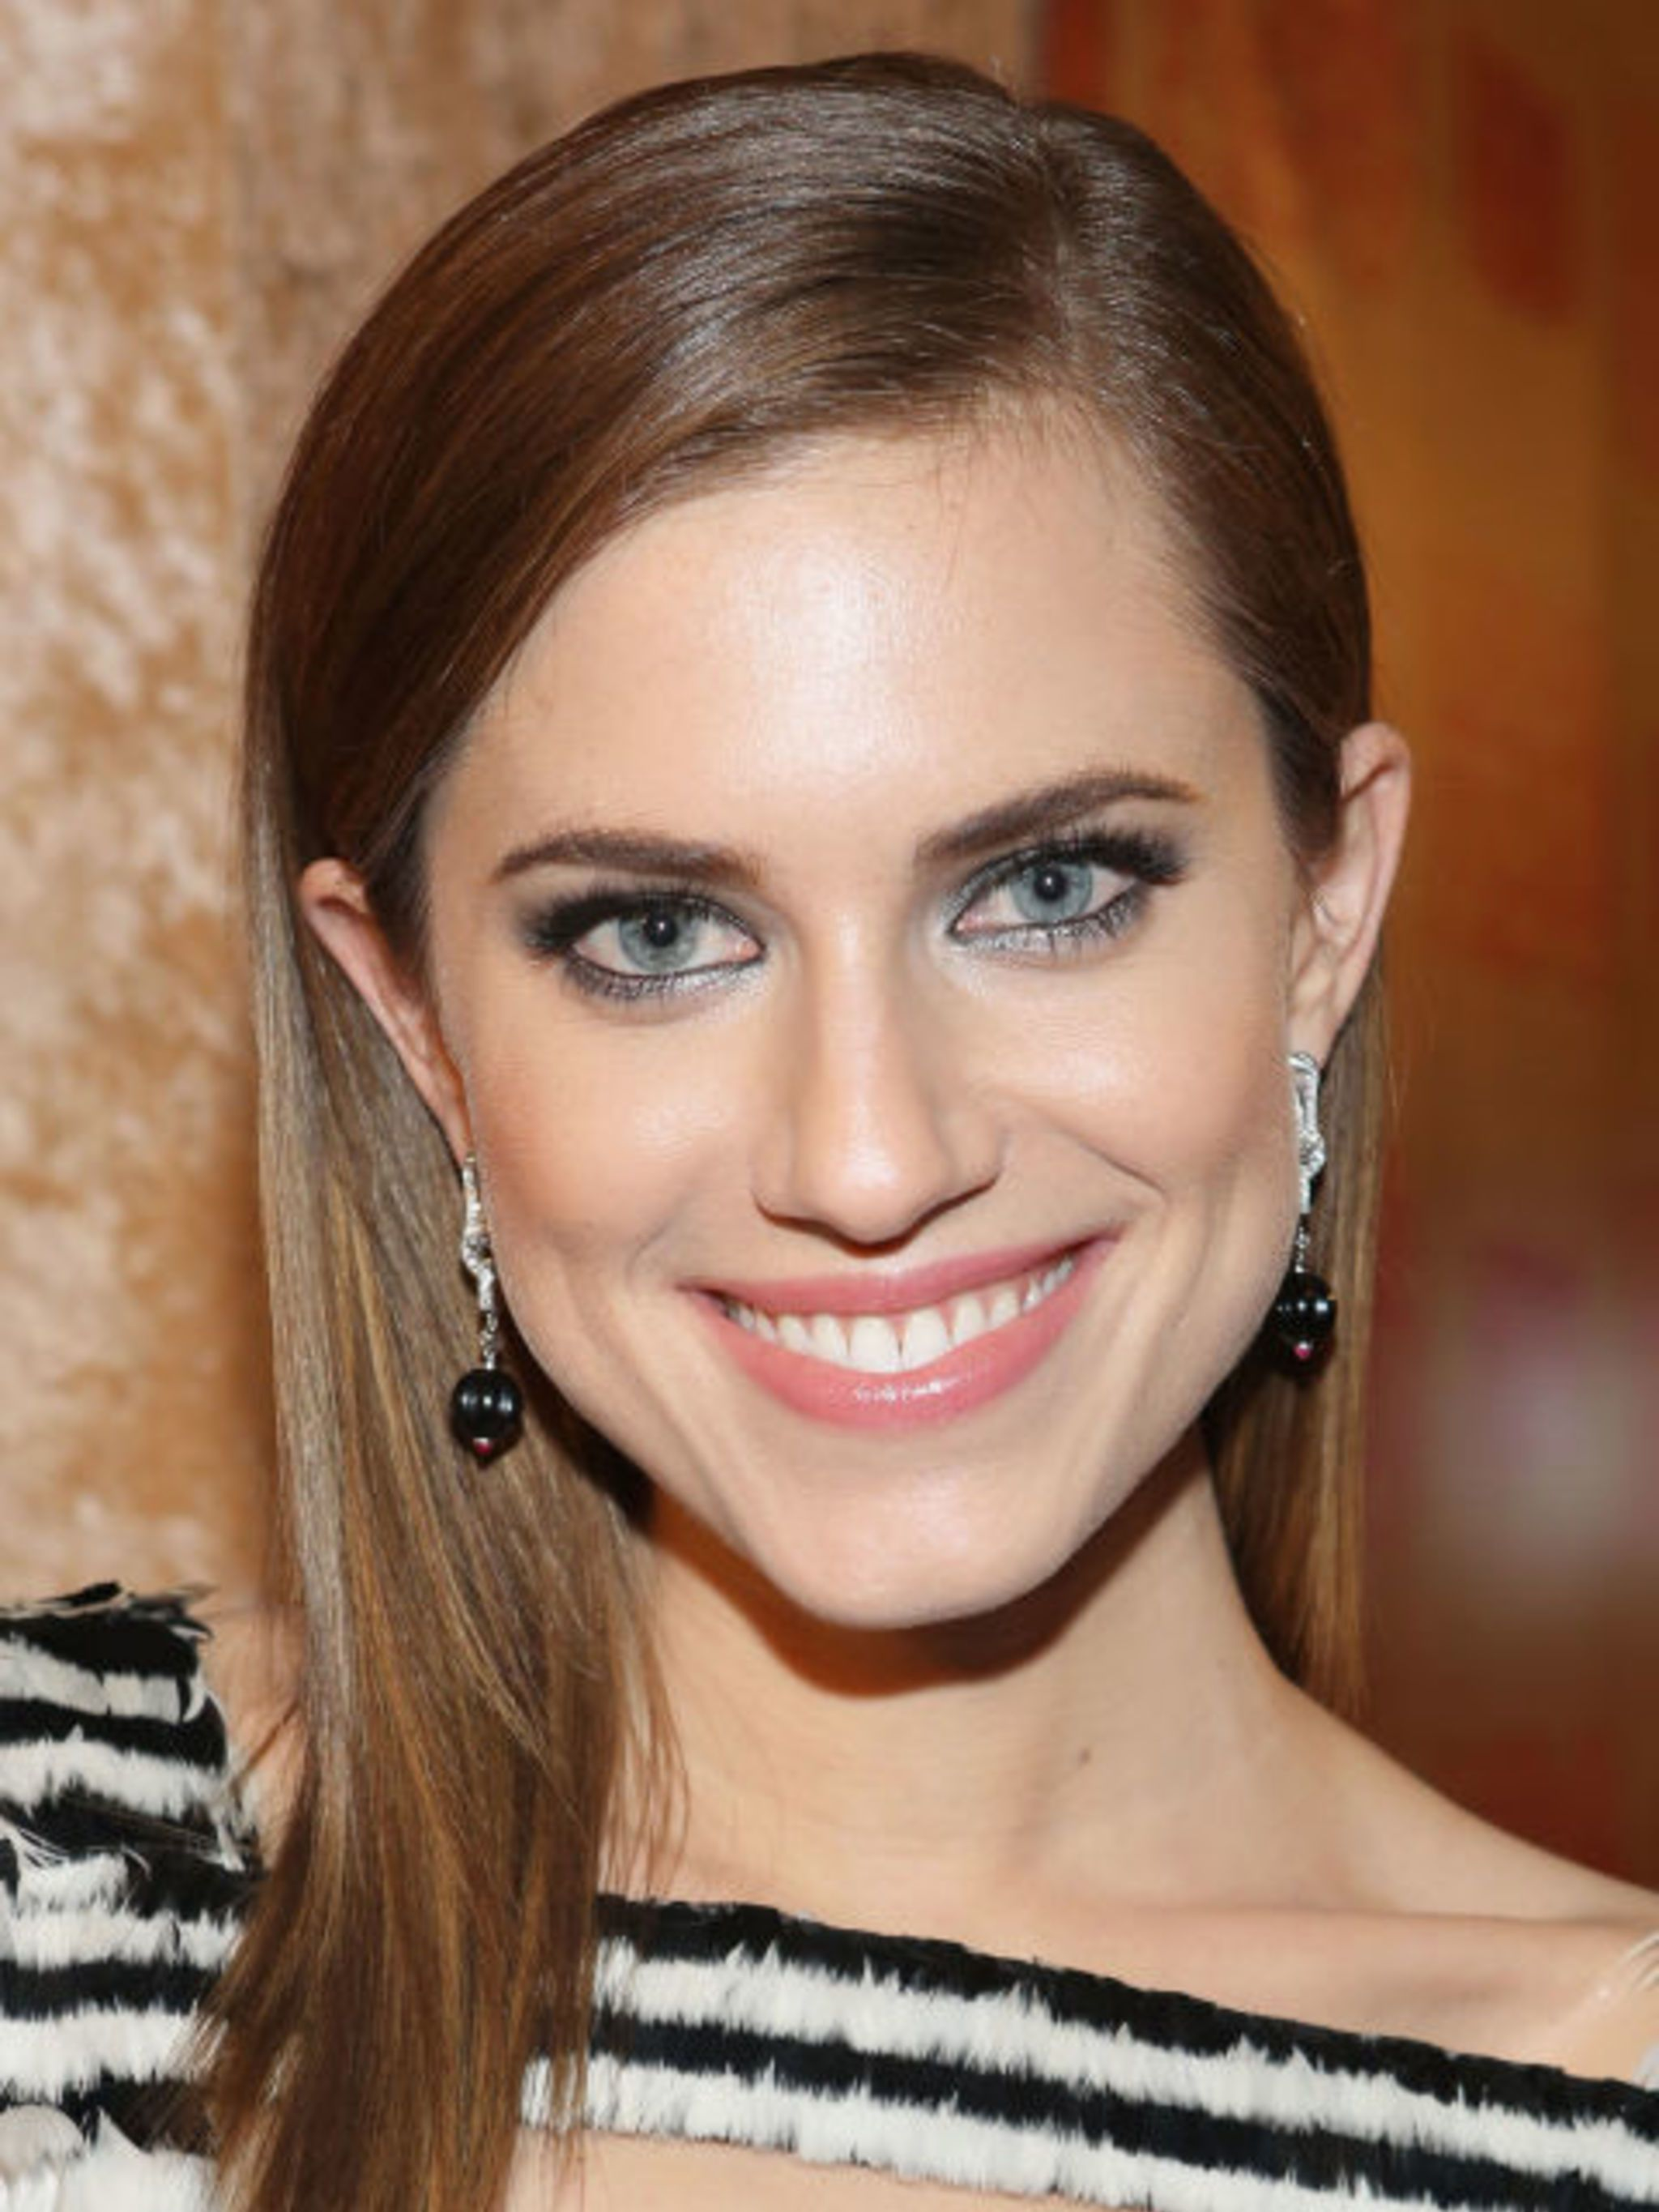 "<p><strong>ALLISON WILLIAMS WOULD BE DRIVEN CRAZY BY MARNIE IRL</strong></p>  <p>""Marnie would drive me crazy if we were friends in real life,"" Williams told BuzzFeed. ""But I have to put that out of my head in order to play her. Like, sleeping with Elijah"